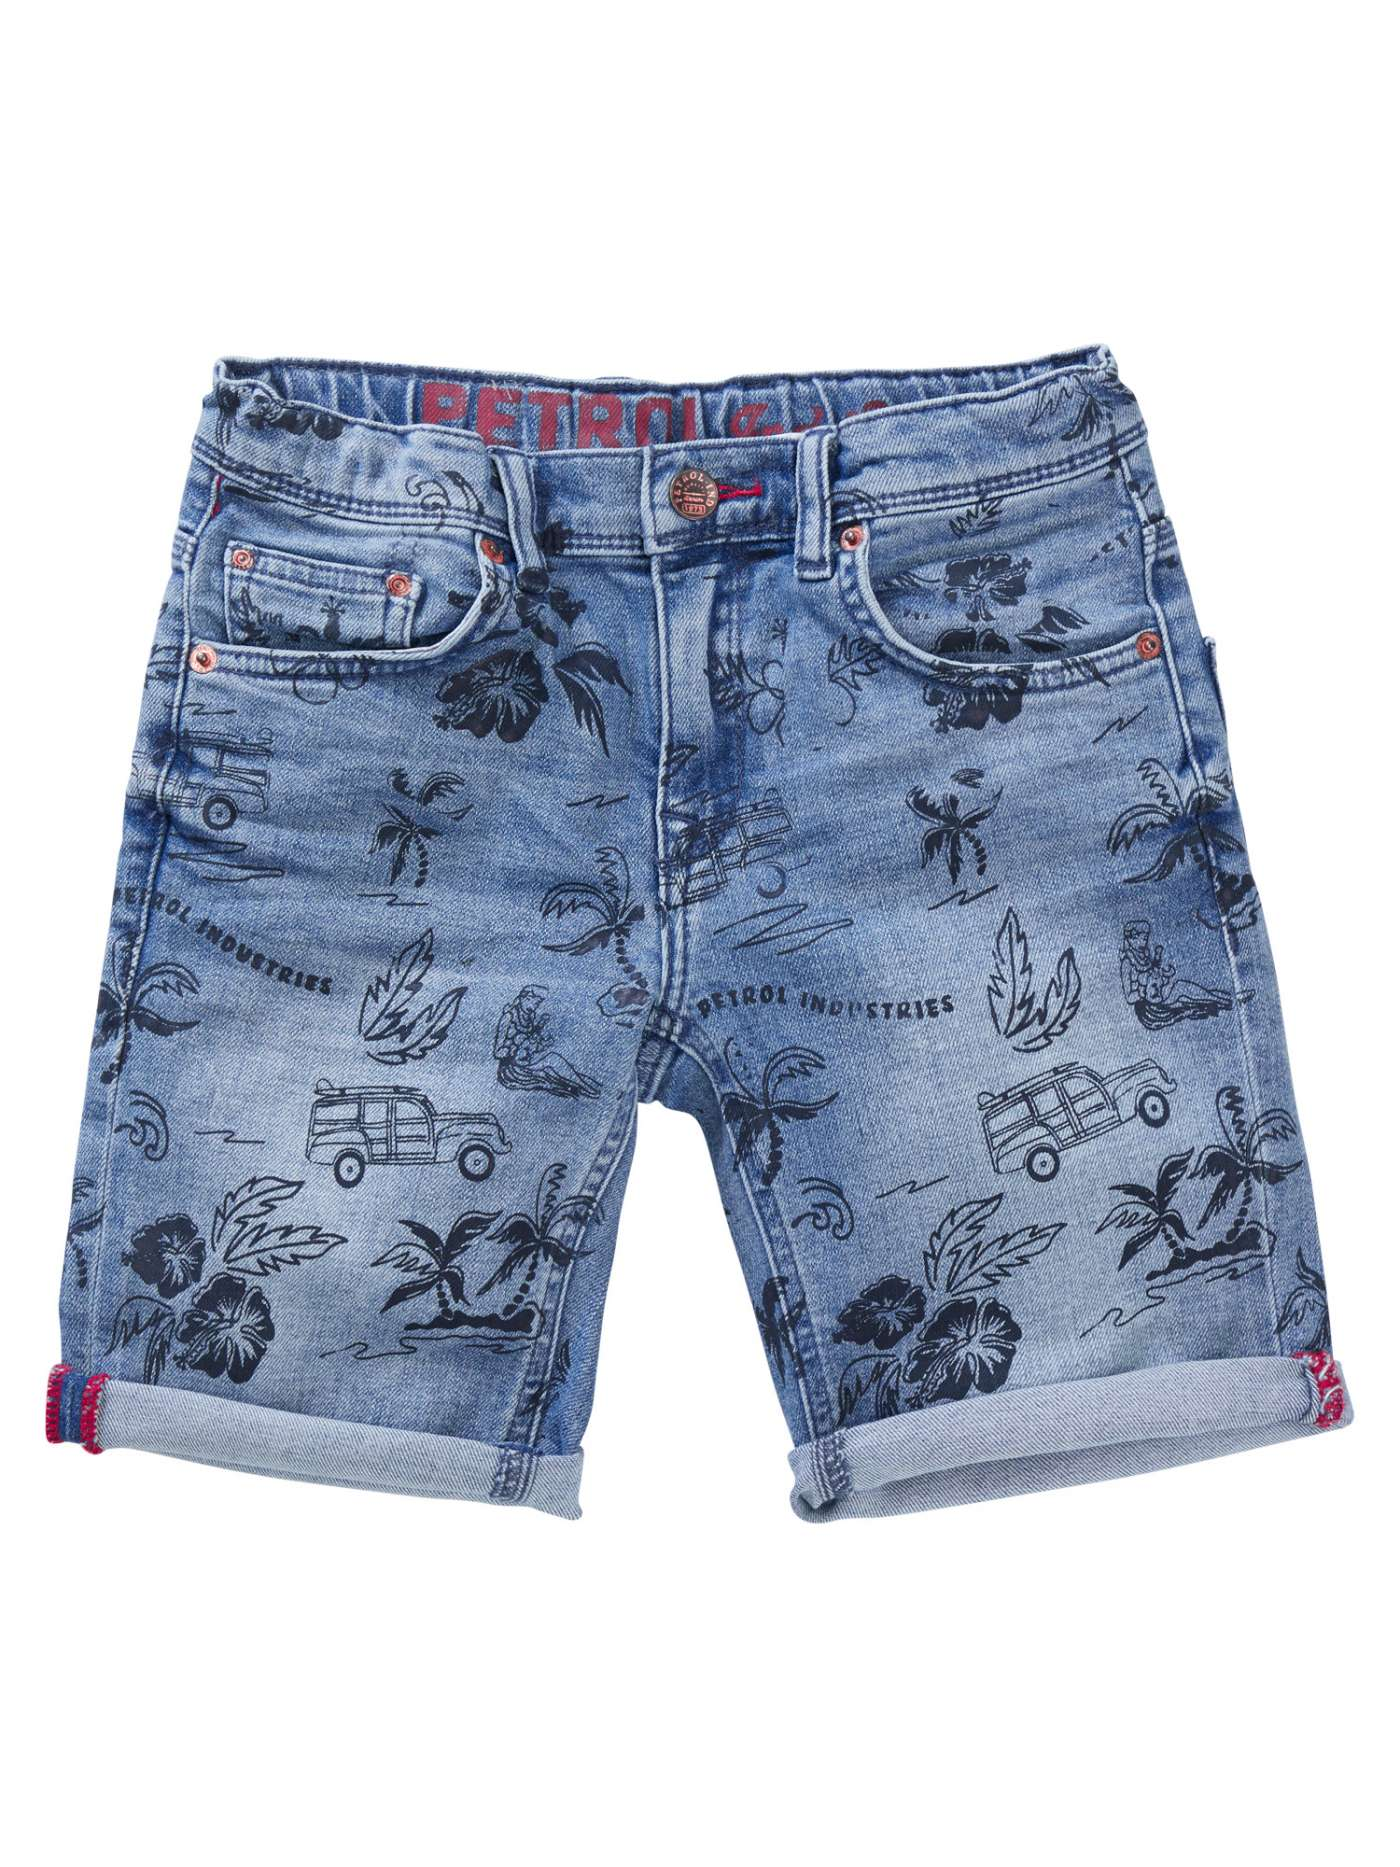 Bobcat denim shorts